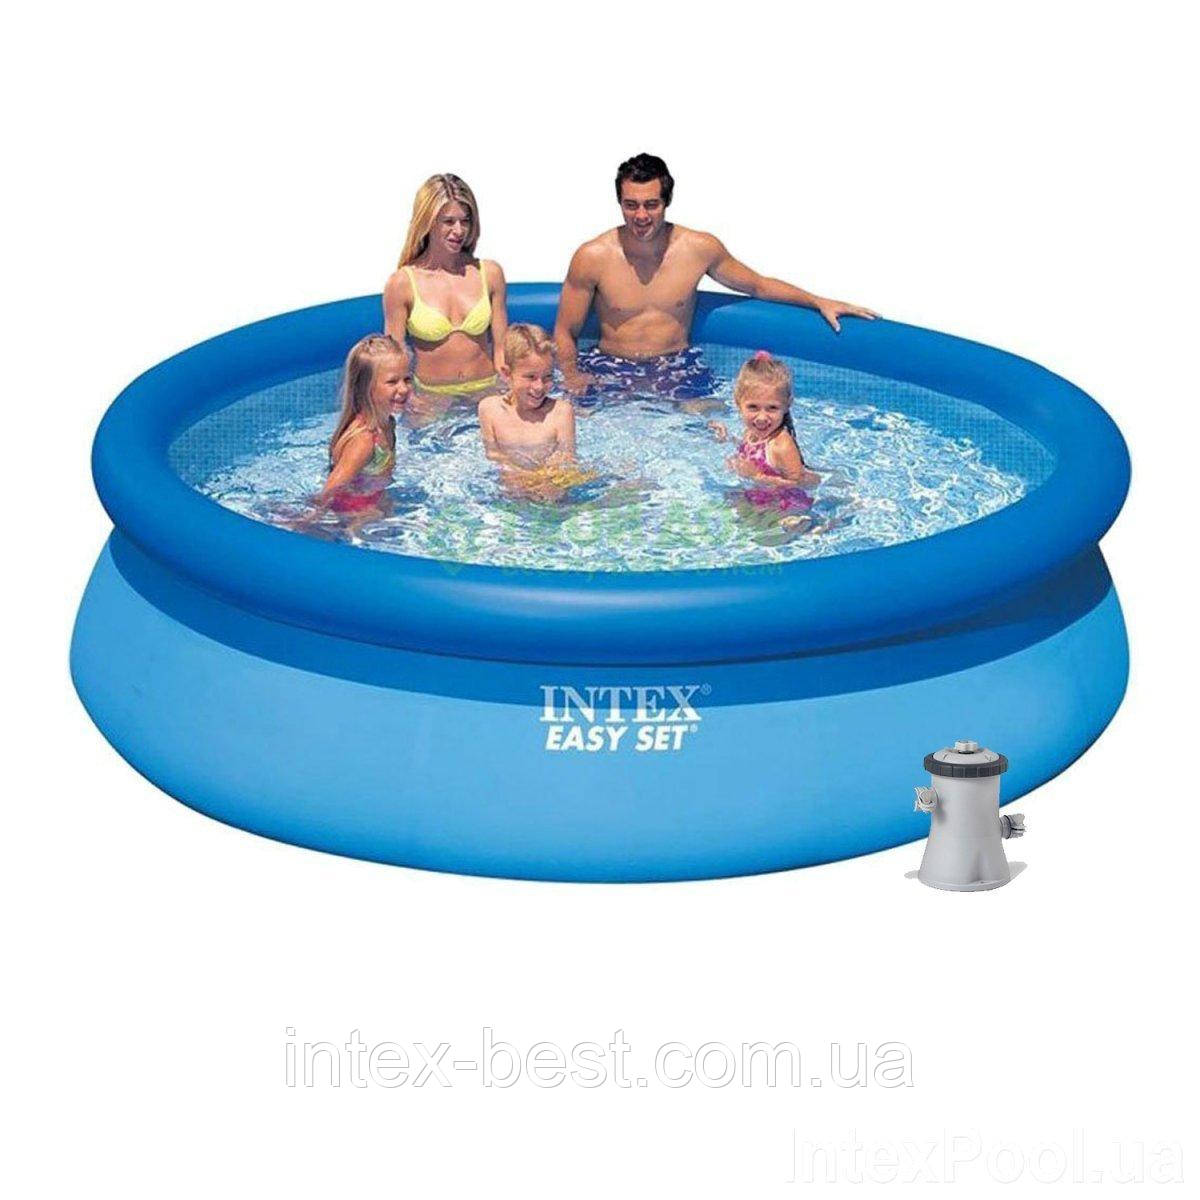 Надувной бассейн Intex 28122 (56922) Easy Set Pool (305х76 см)